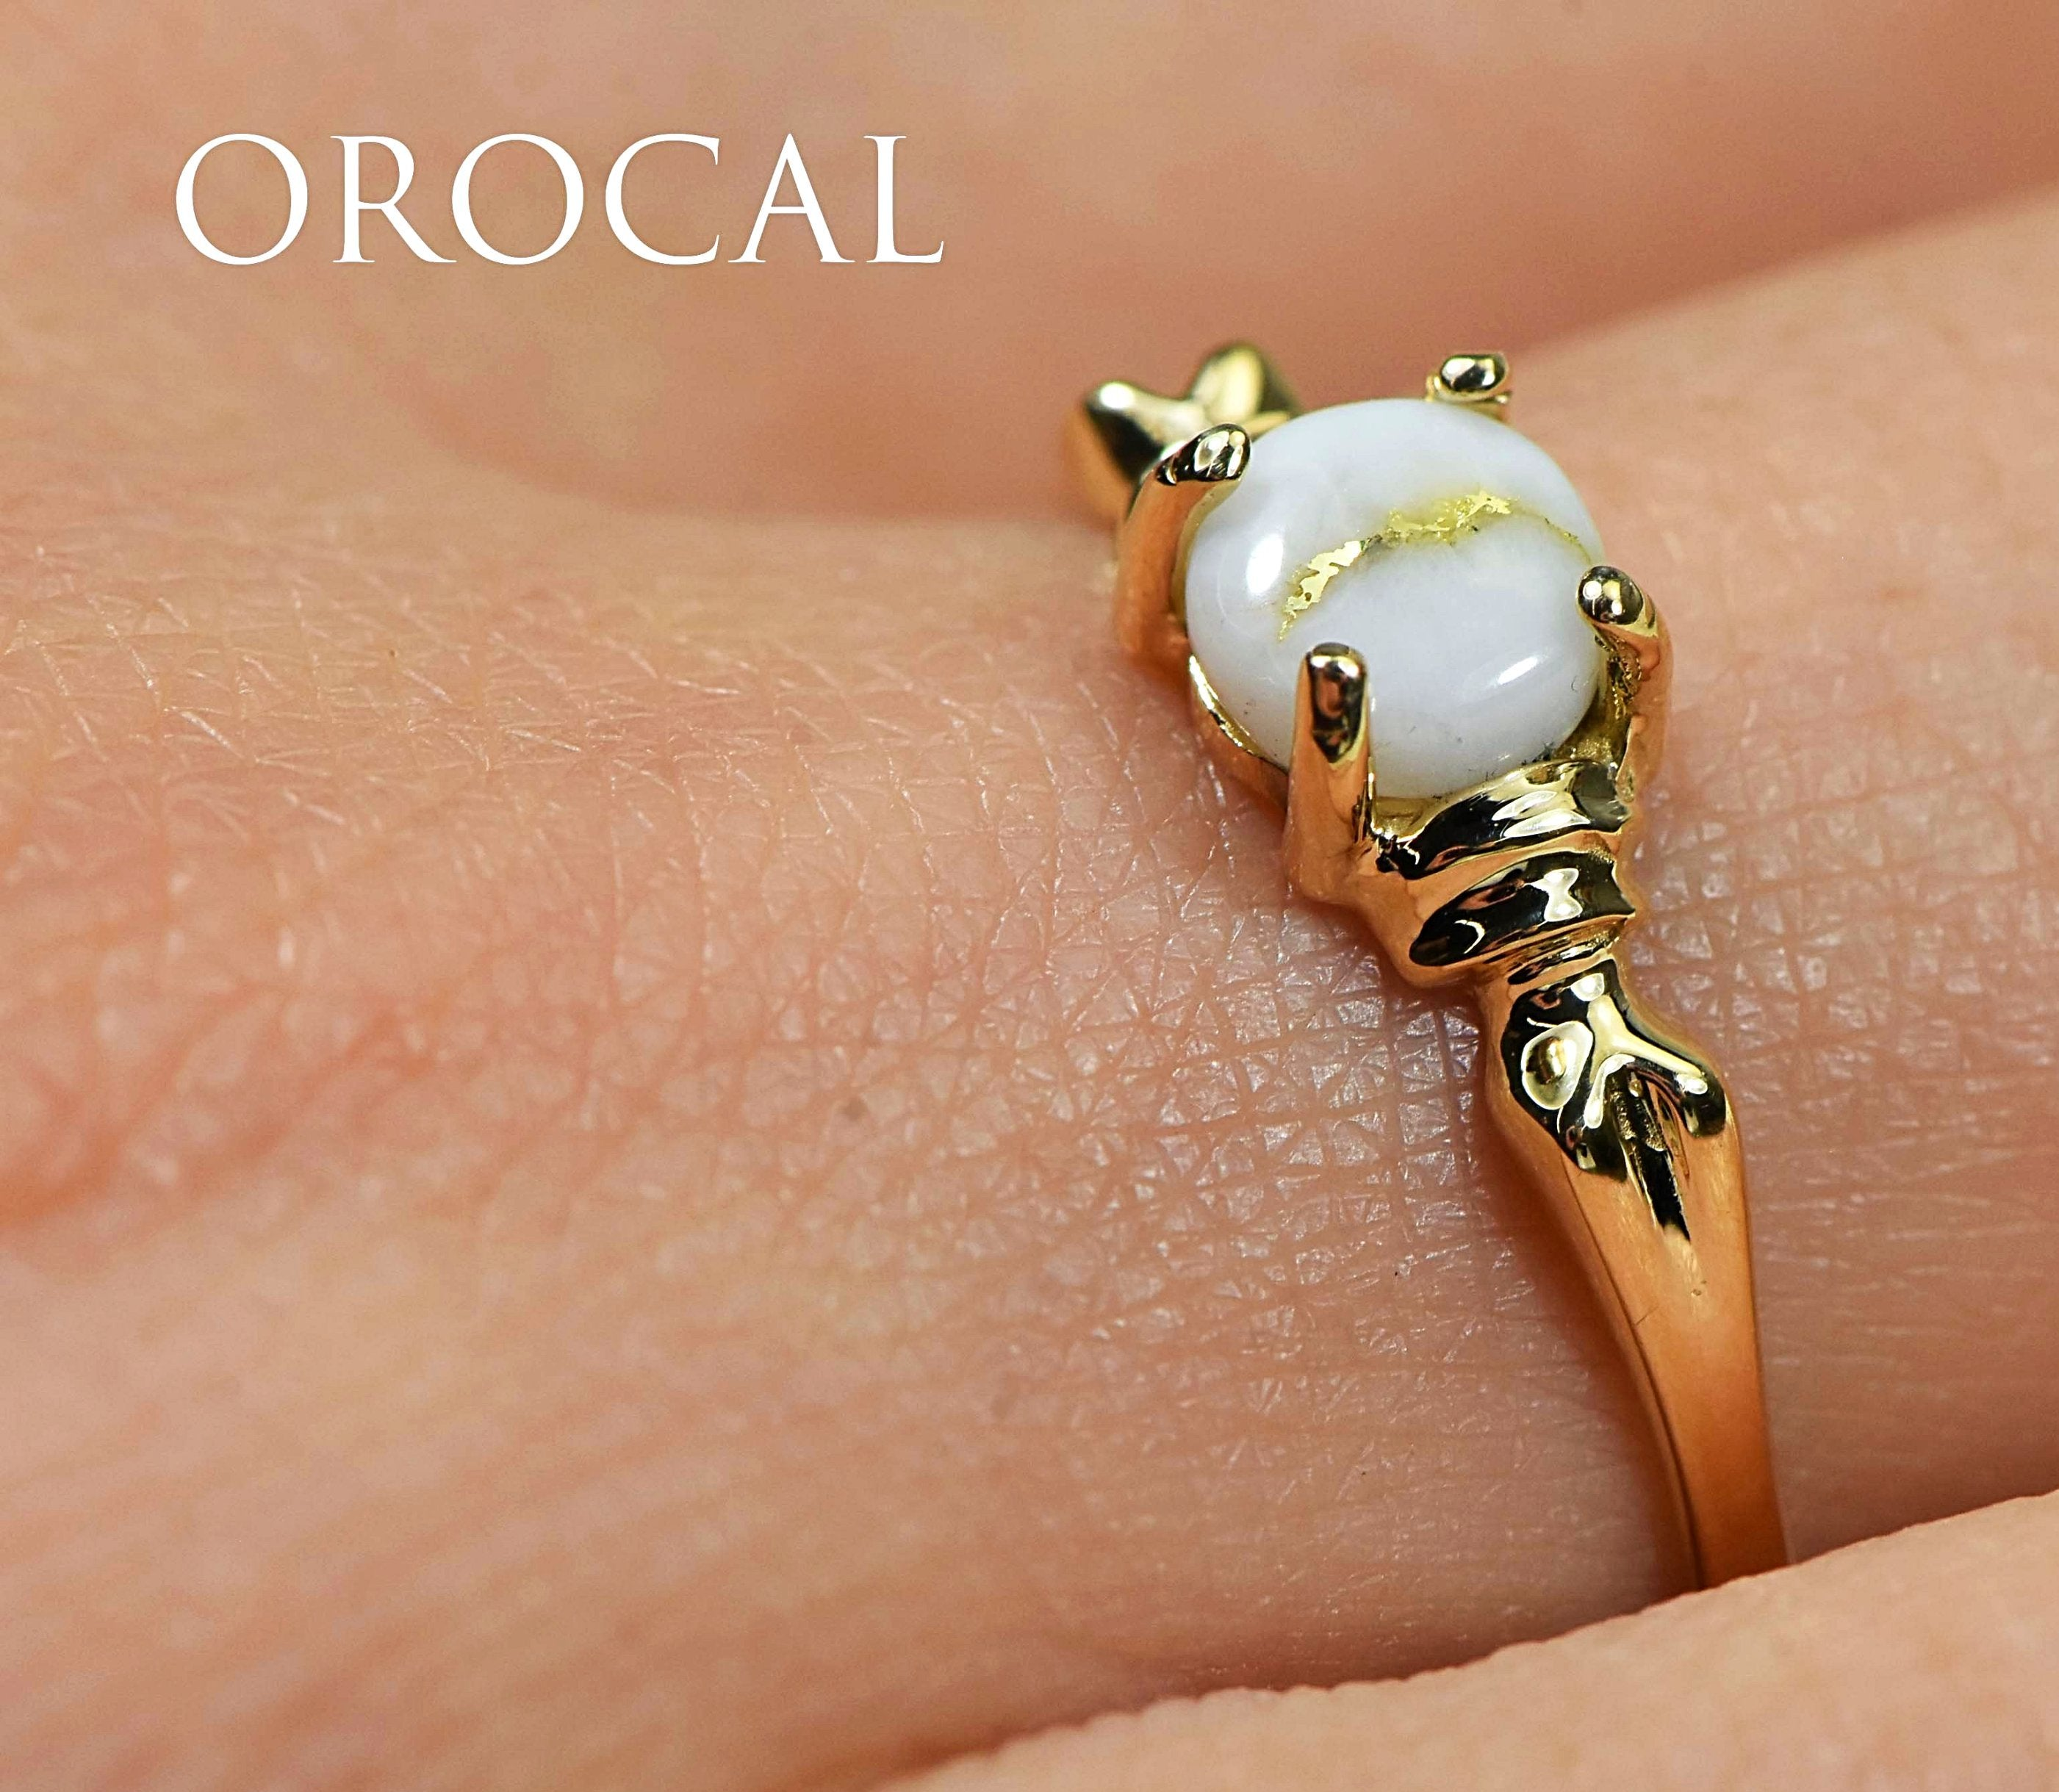 "Gold Quartz Ring ""Orocal"" RL681Q5MM Genuine Hand Crafted Jewelry - 14K Gold Casting"